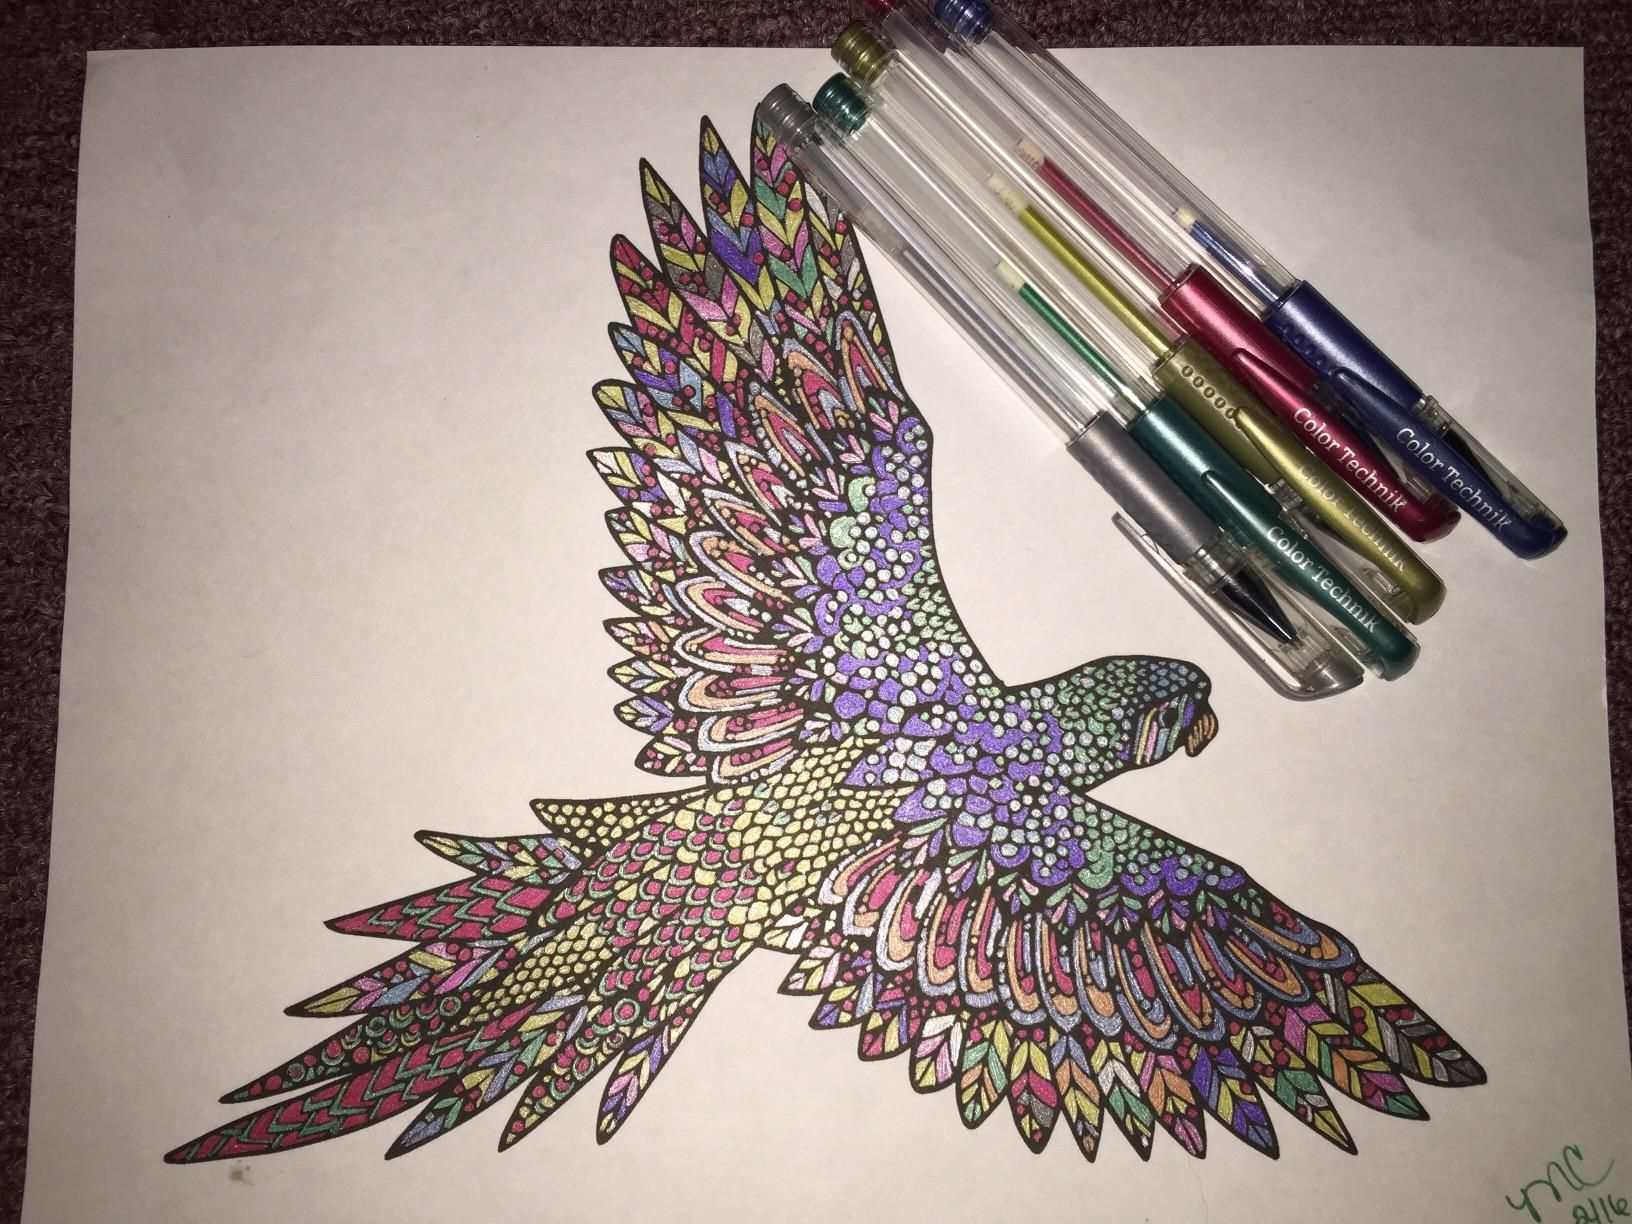 Best Gel Pen Colors With Comfort Grip Enhance Your Adult Coloring Book Experience Now